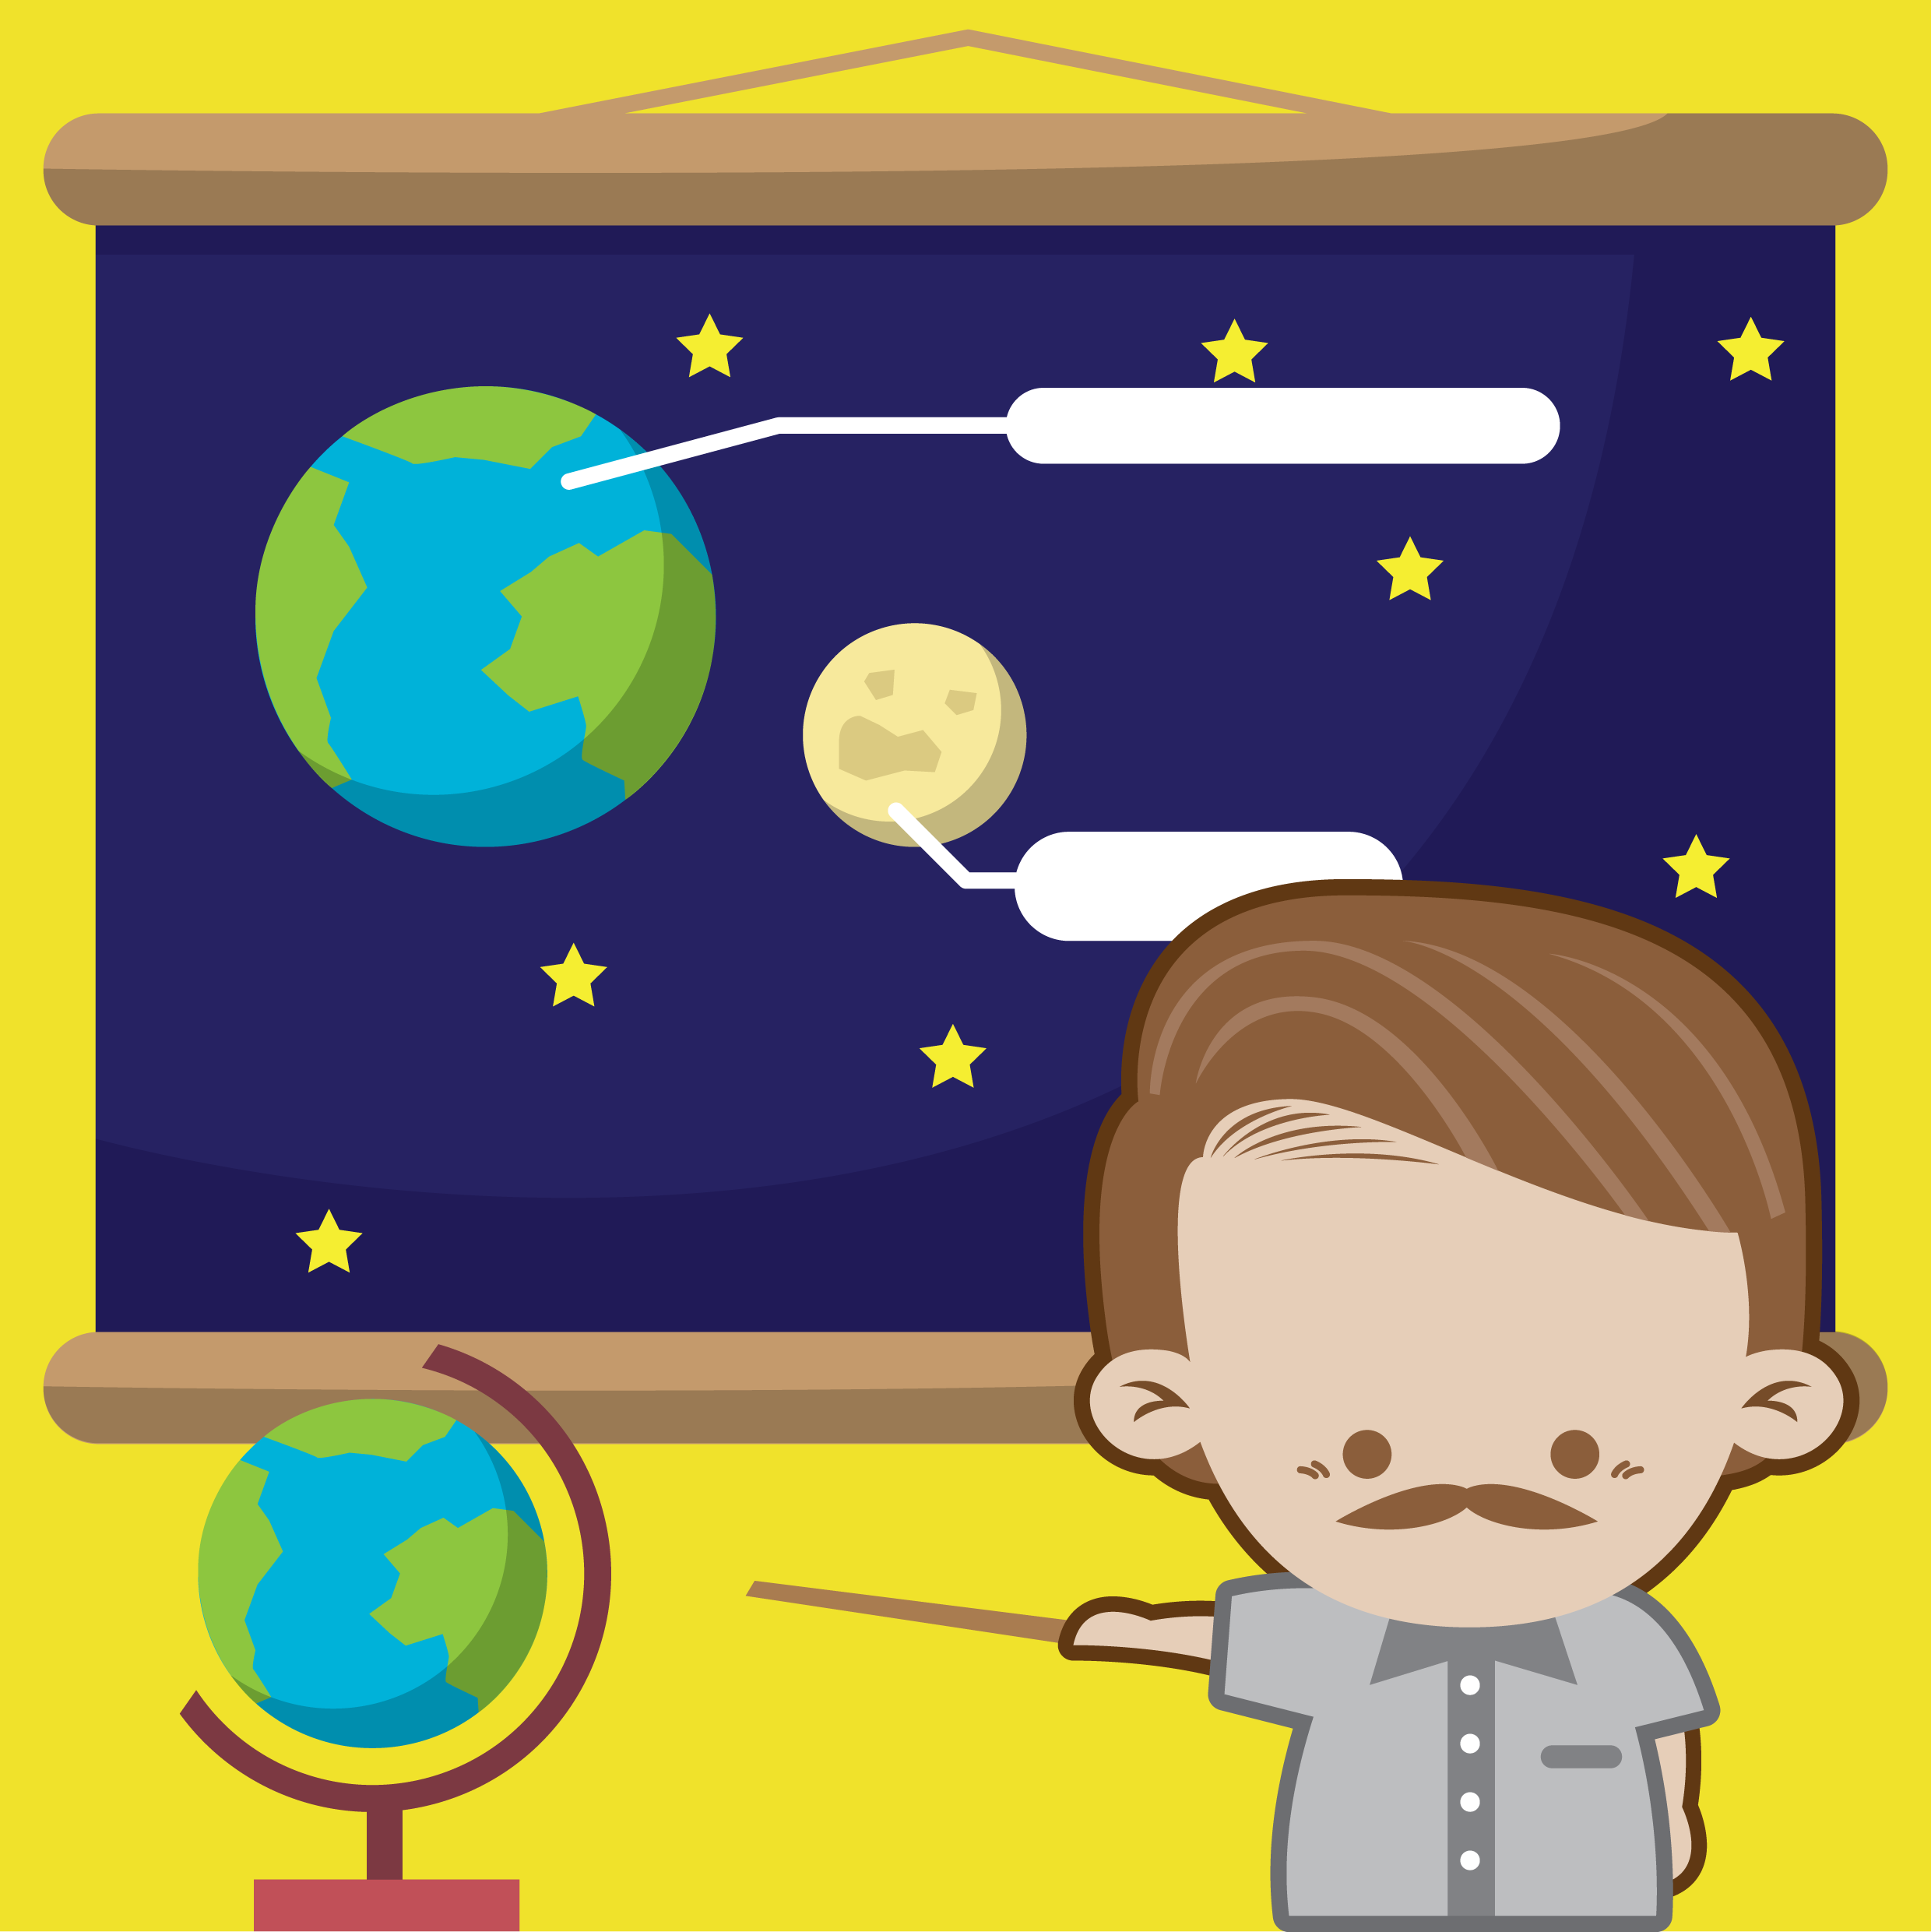 Reflection clipart kid question #2